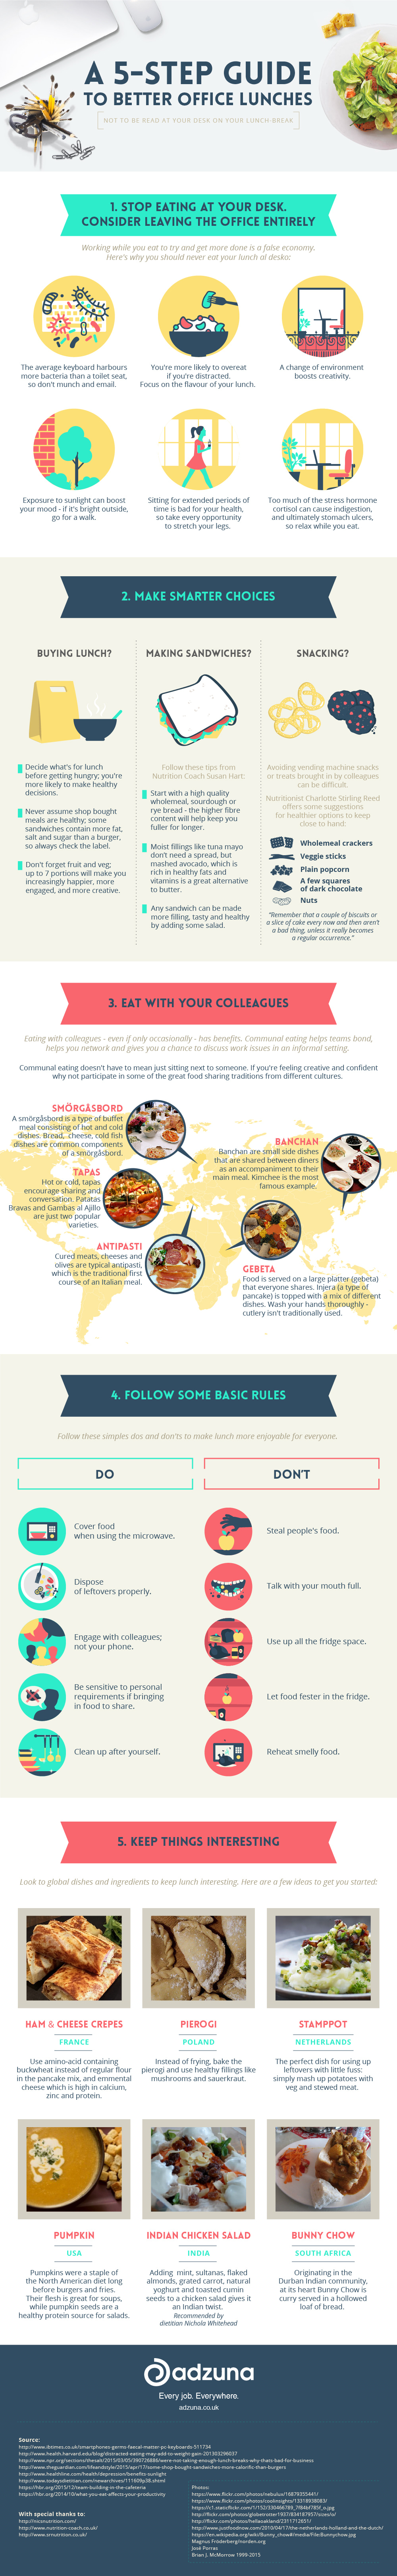 Guide To Better Office Lunches Infographic